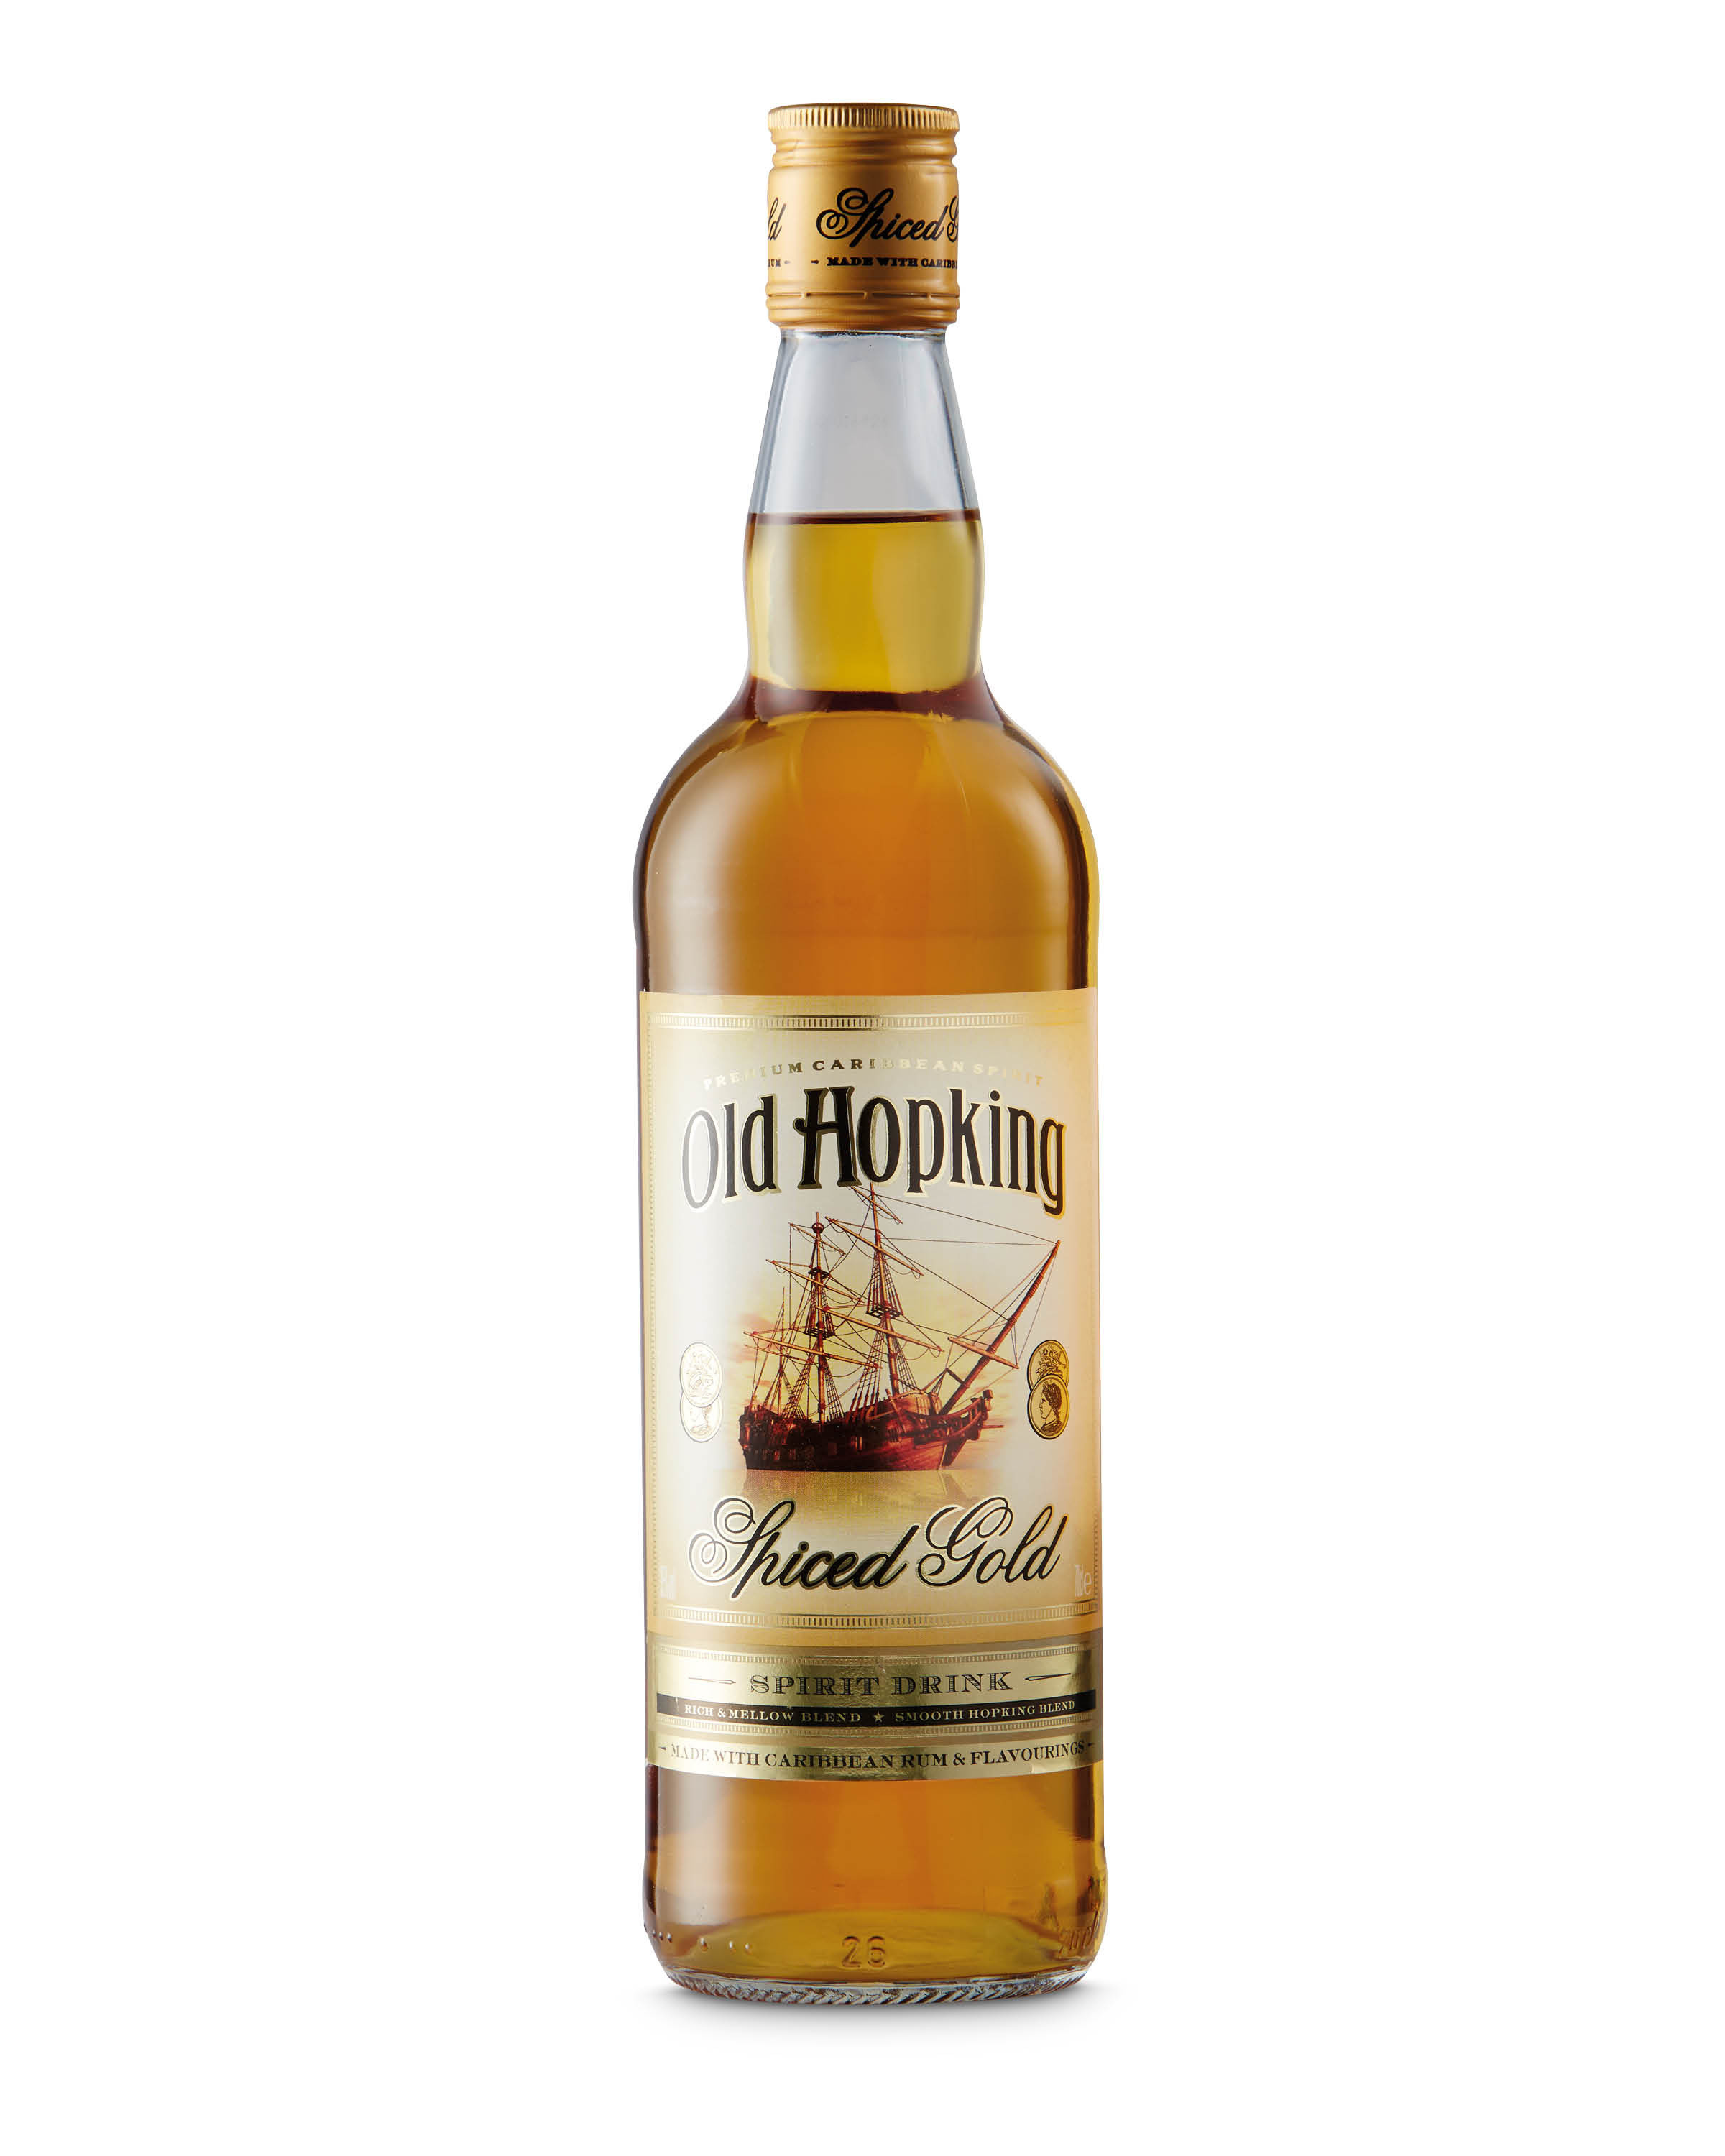 Old Hopking Spiced Rum